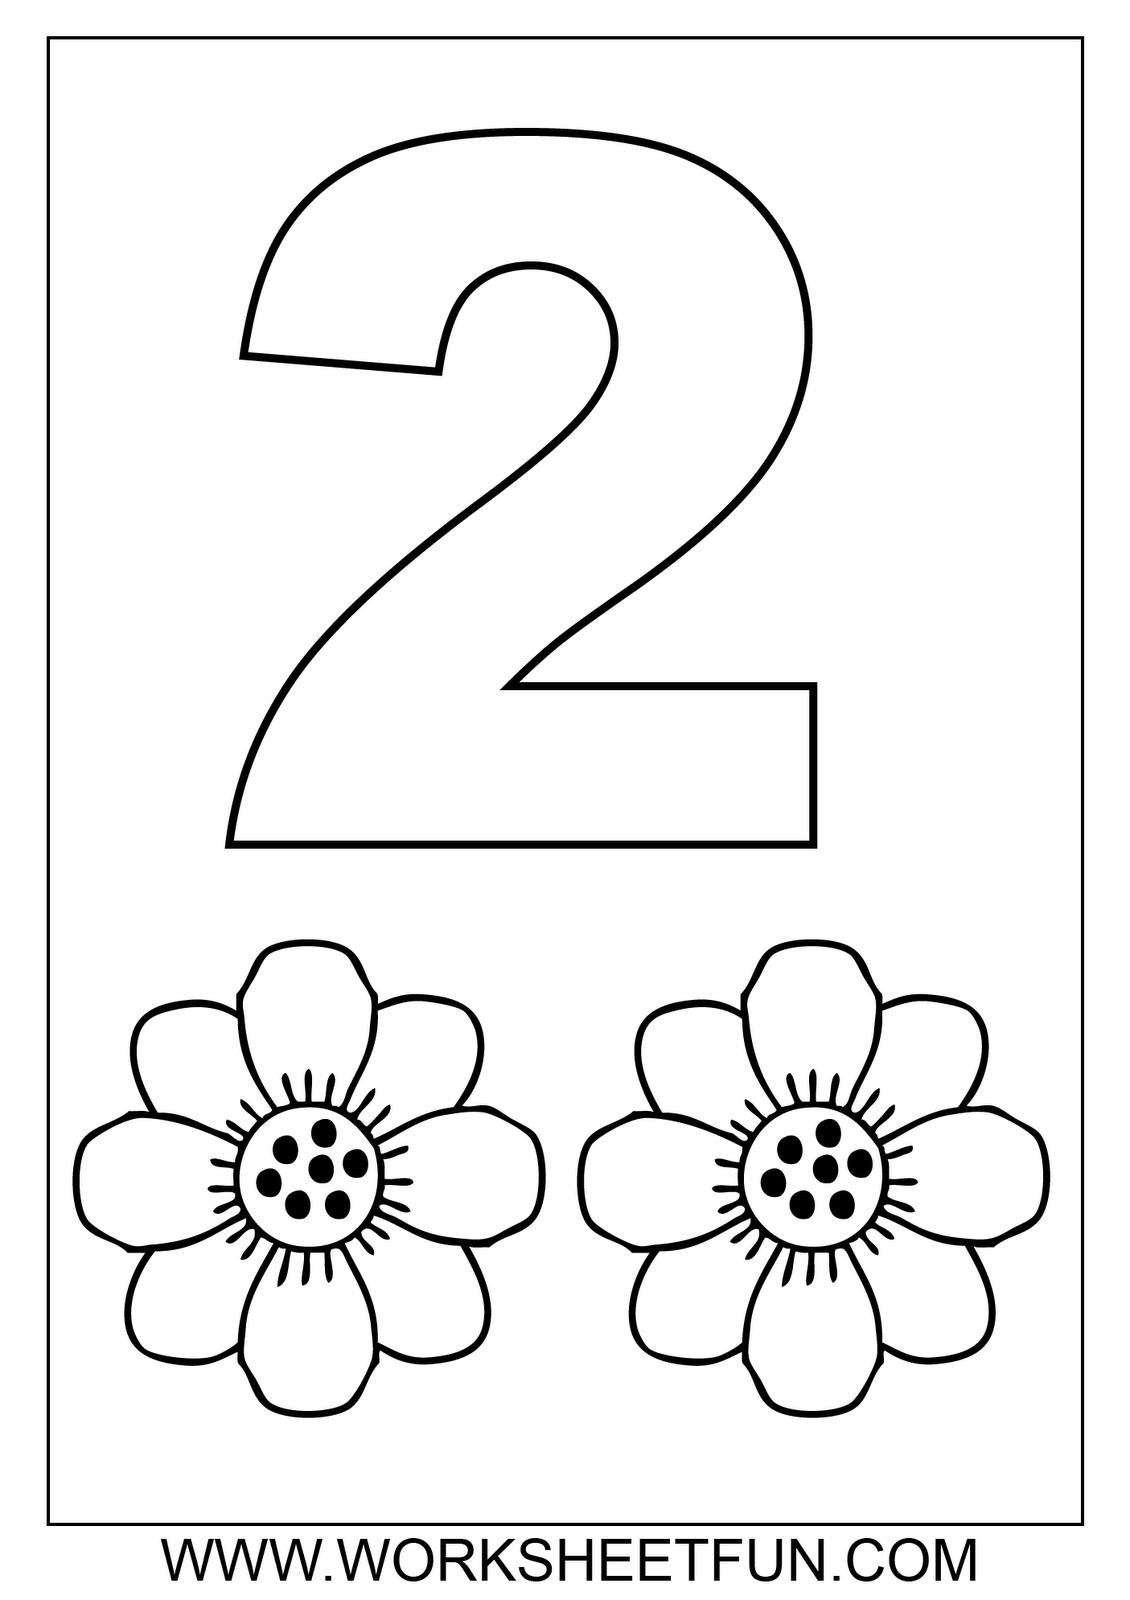 free math worksheetsnumber coloring